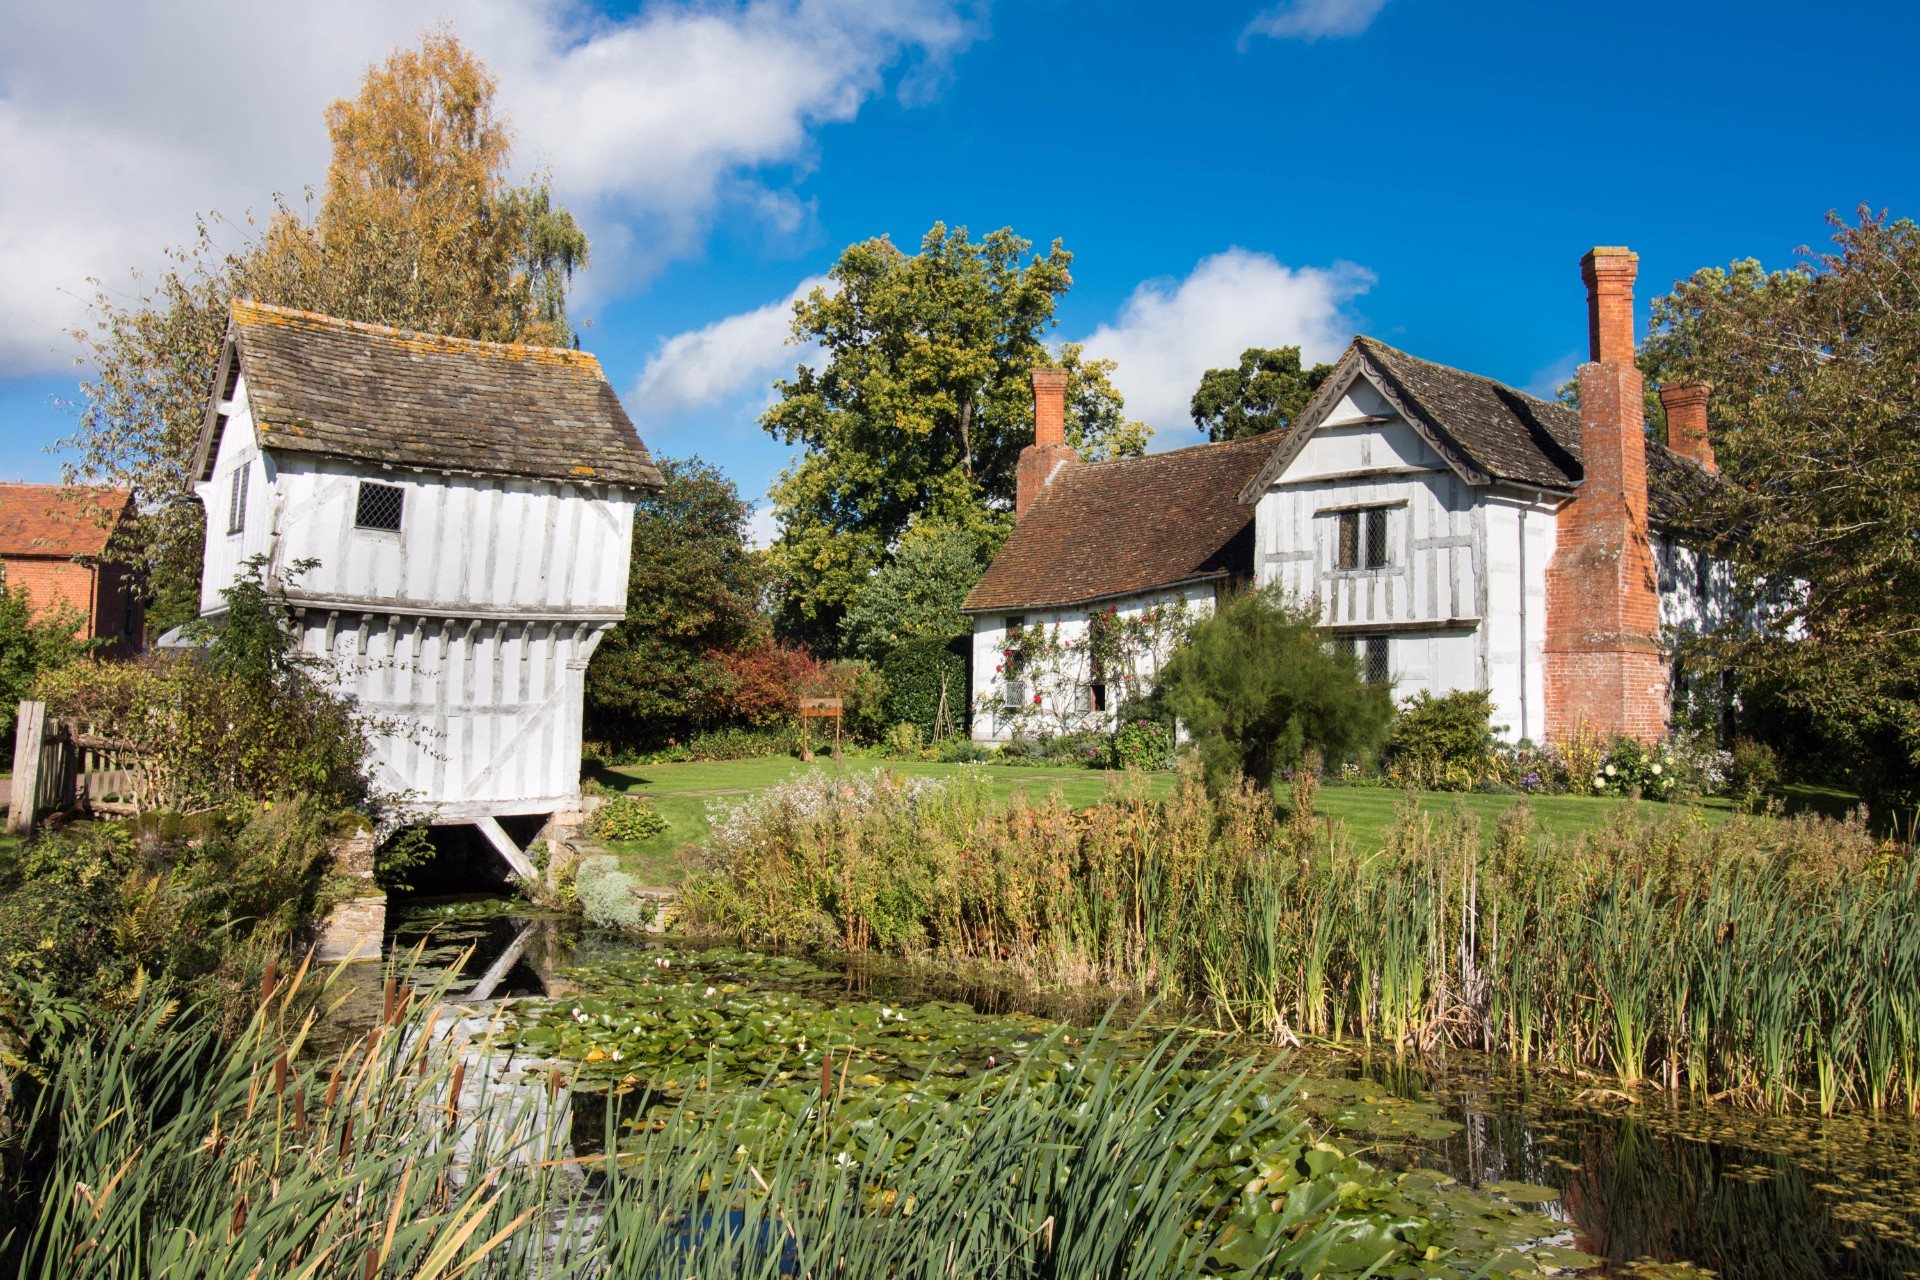 Brockhampton Estate Black and White Timber Building Moat Lily Pads Blue Sky Top 25 Things to Do in Herefordshire